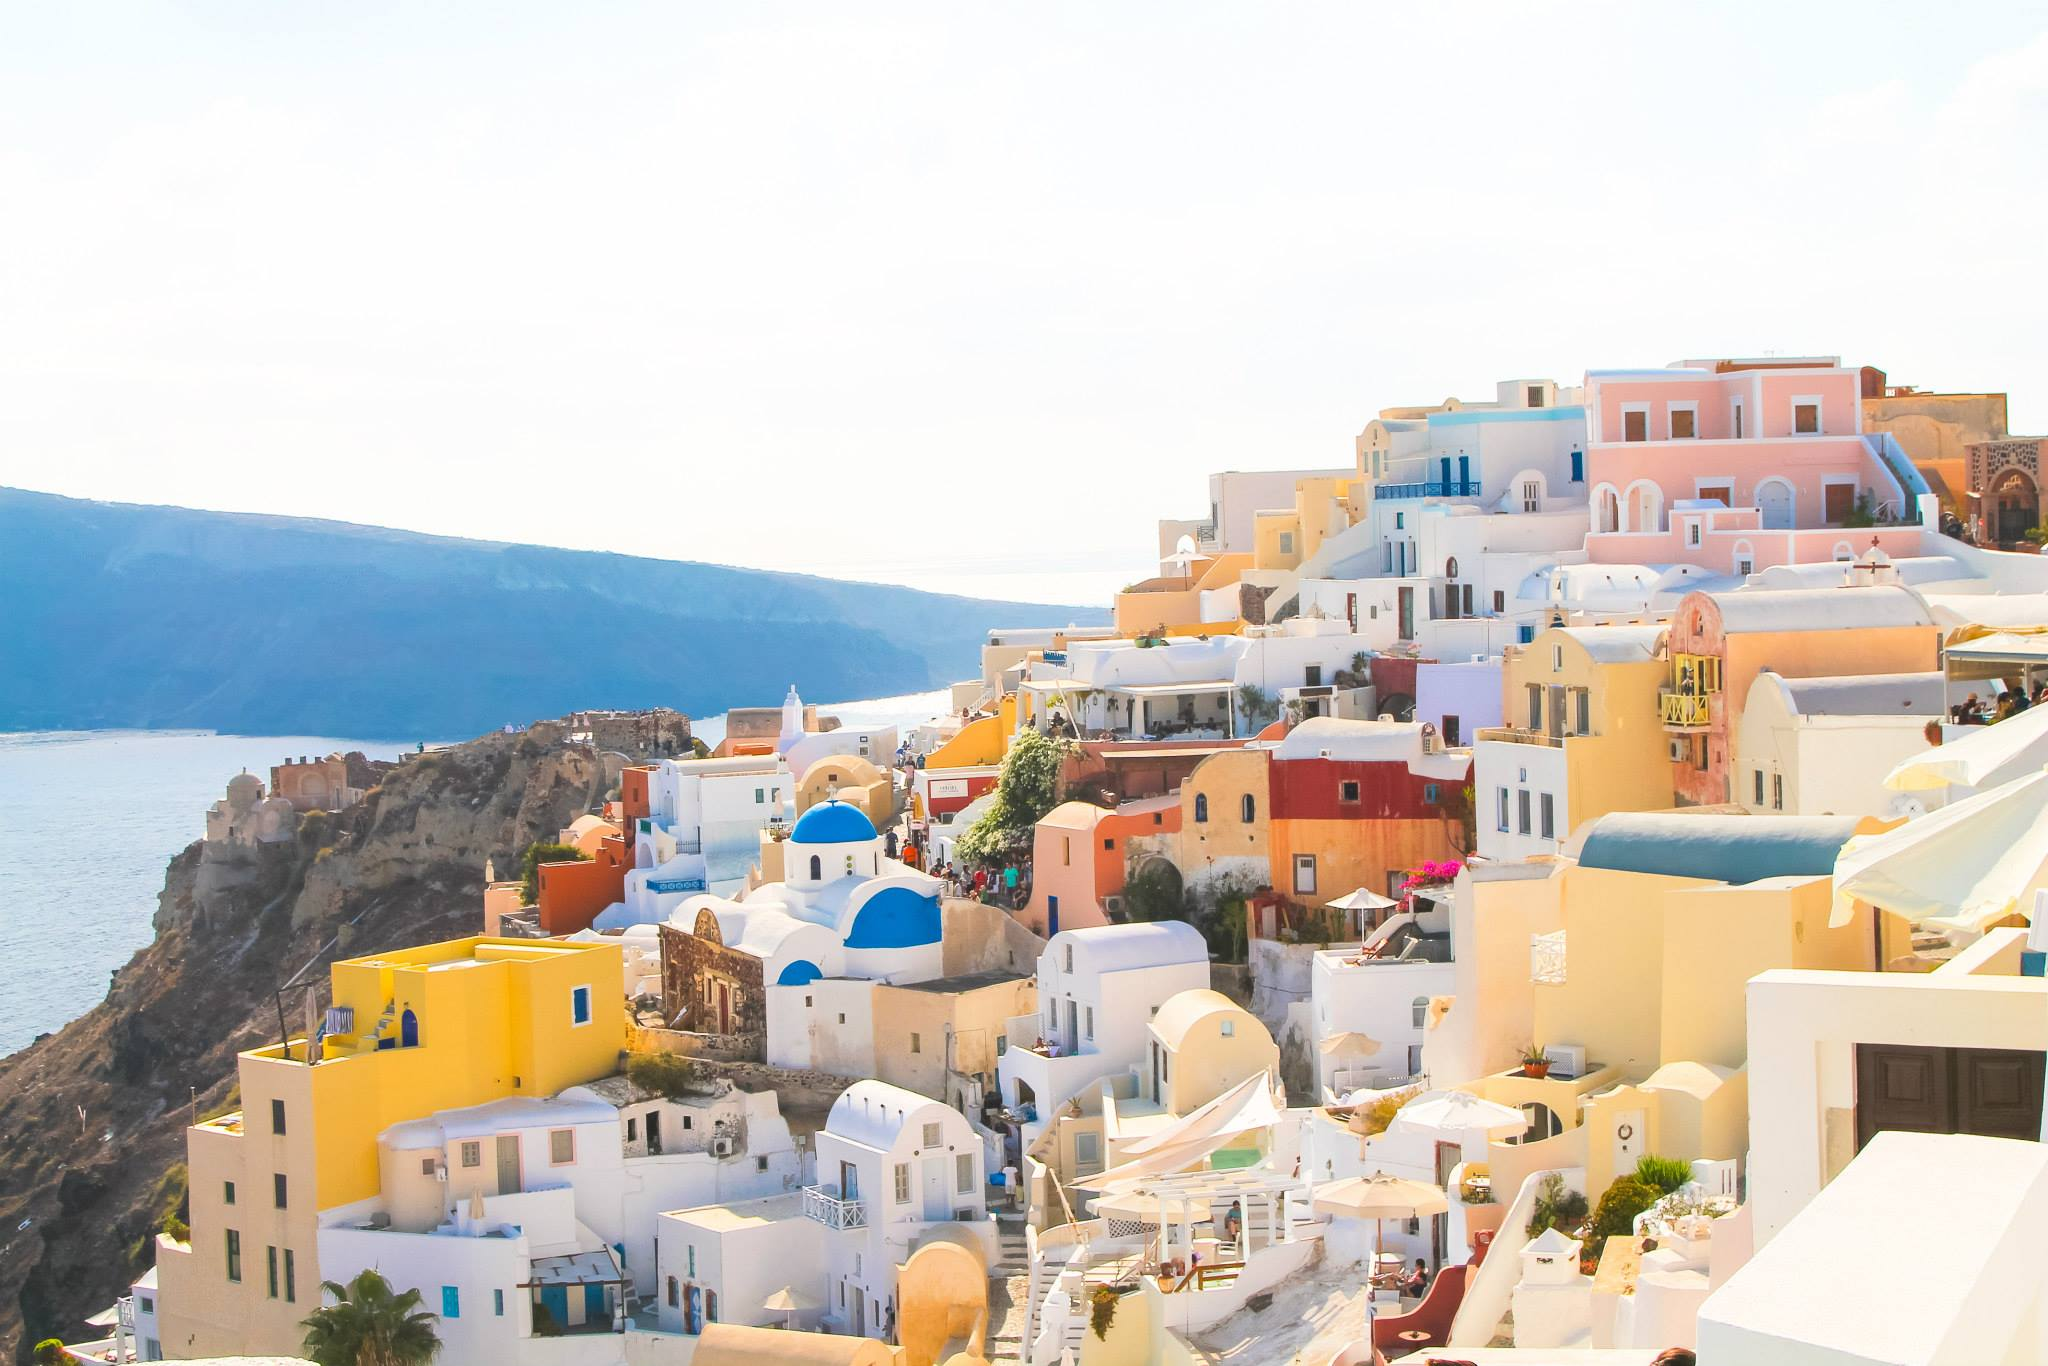 This Is The Part Of Santorini No One Ever Tells You About But You Should Definitely Visit! (1)